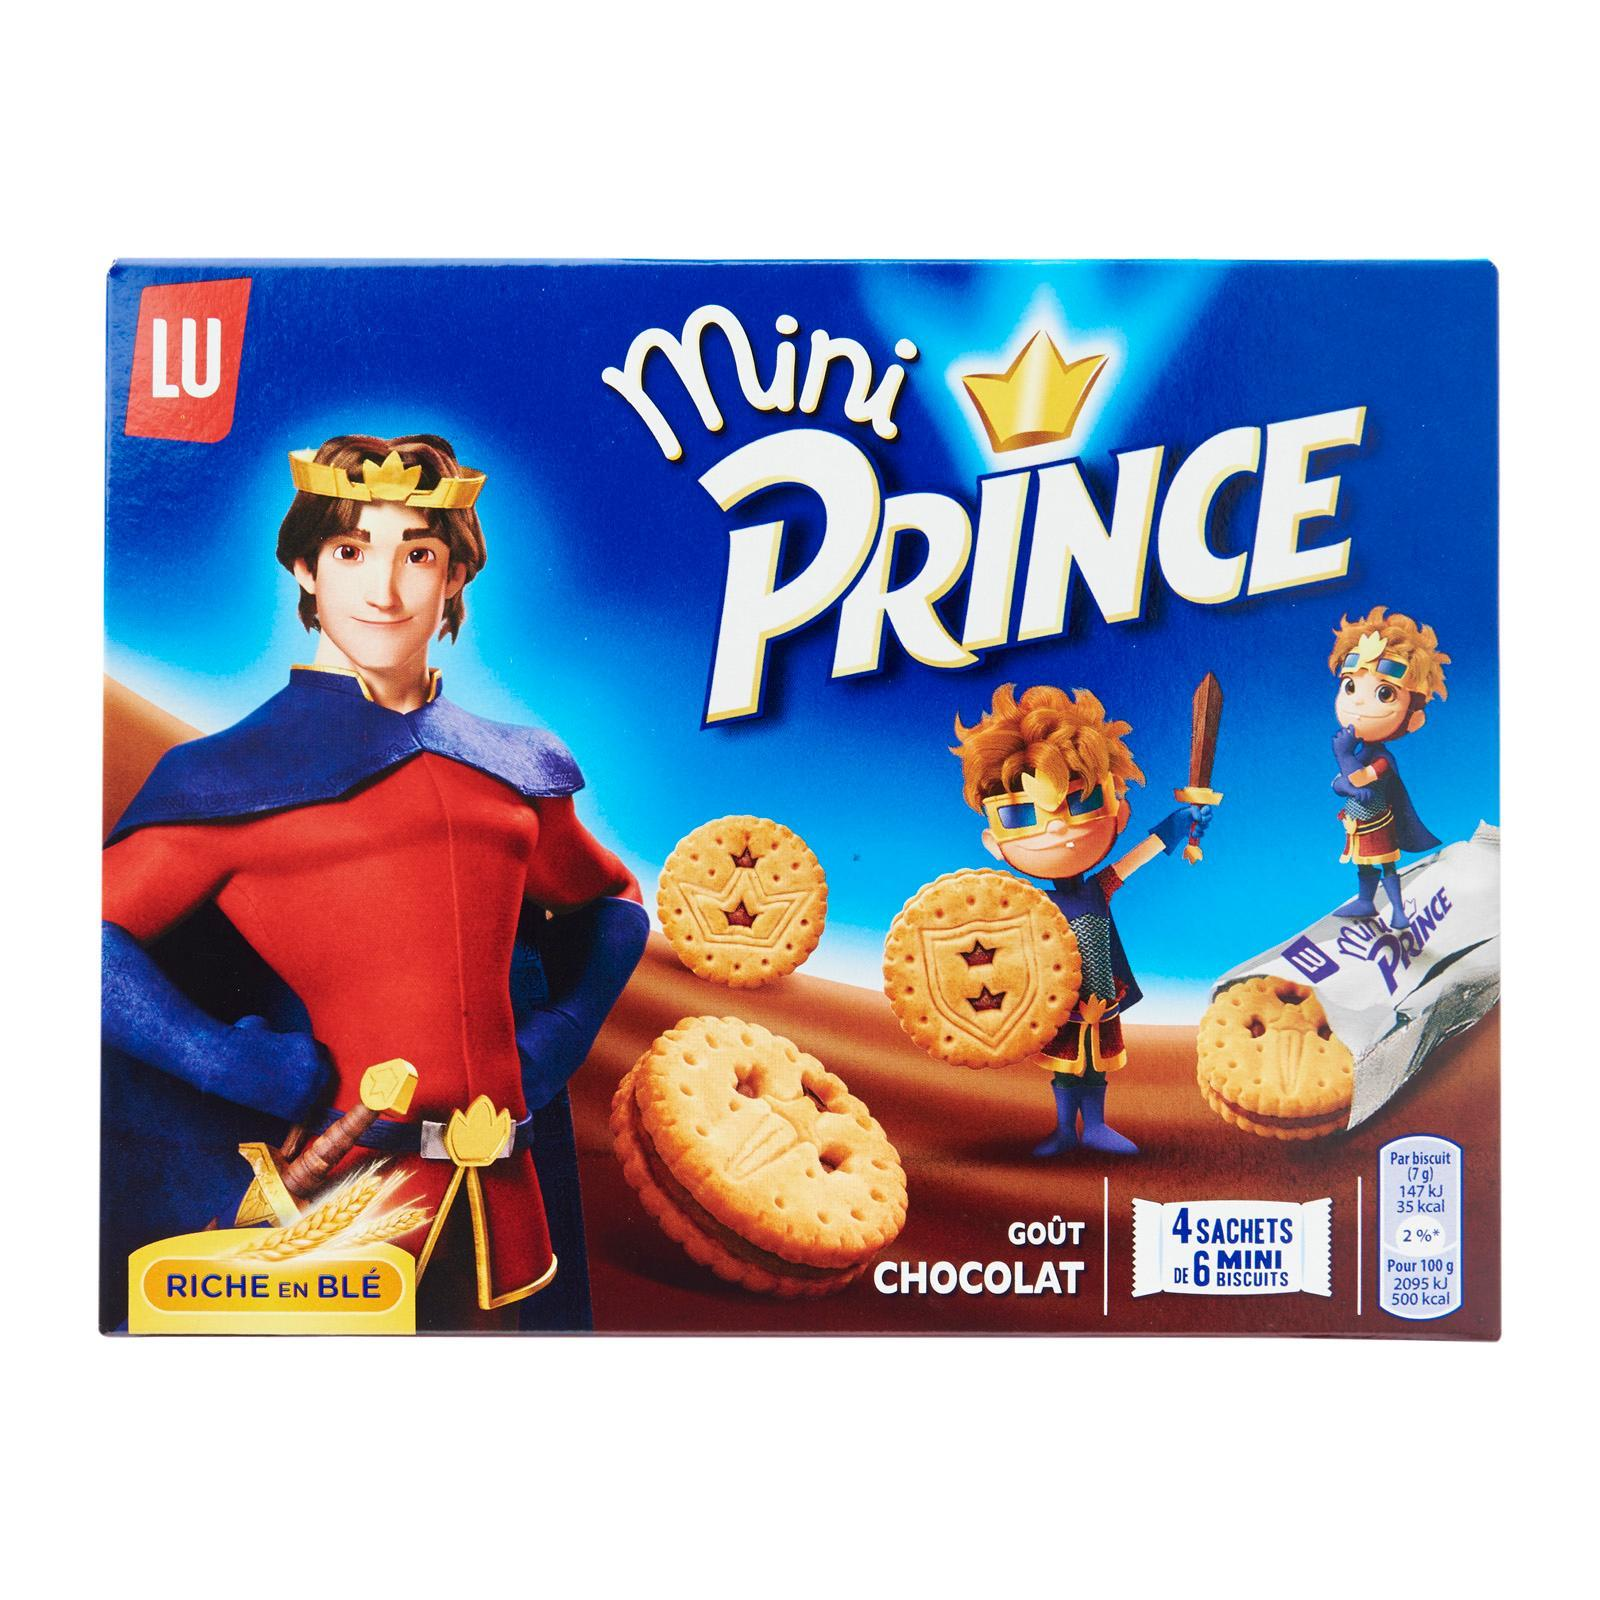 LU Prince Mini Chocolate Biscuits